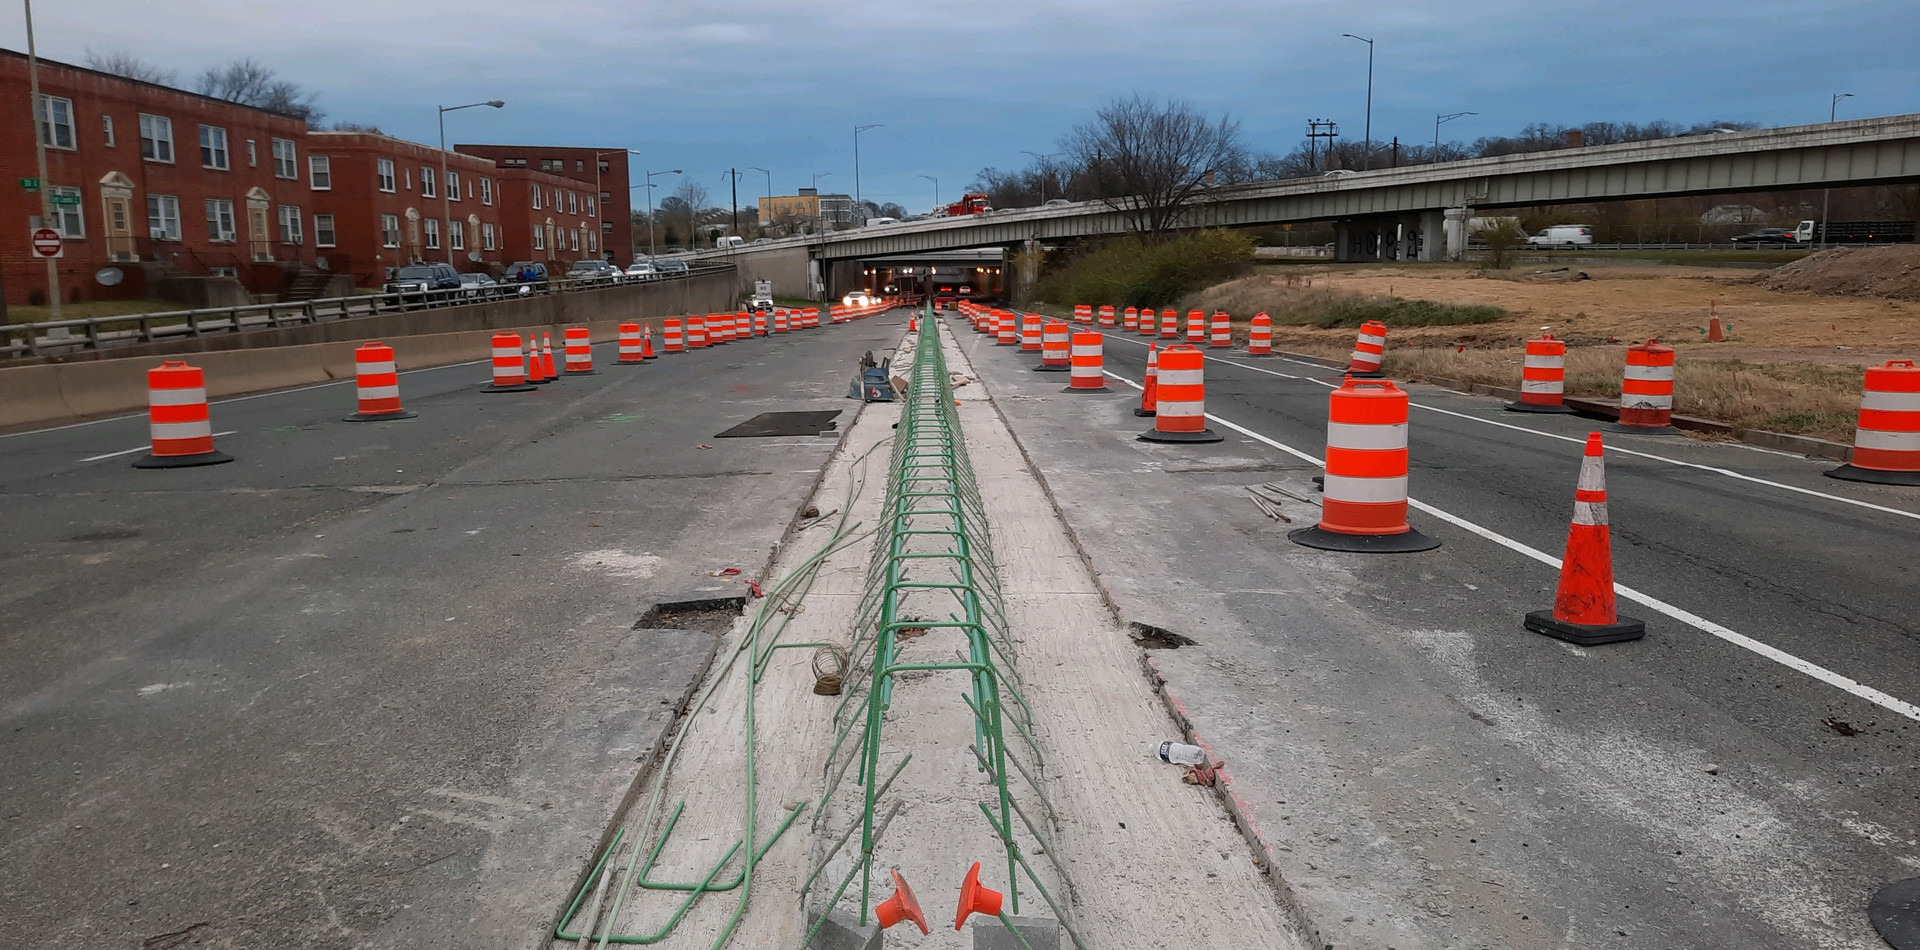 Installing Rebars for Median Barrier at East Approach